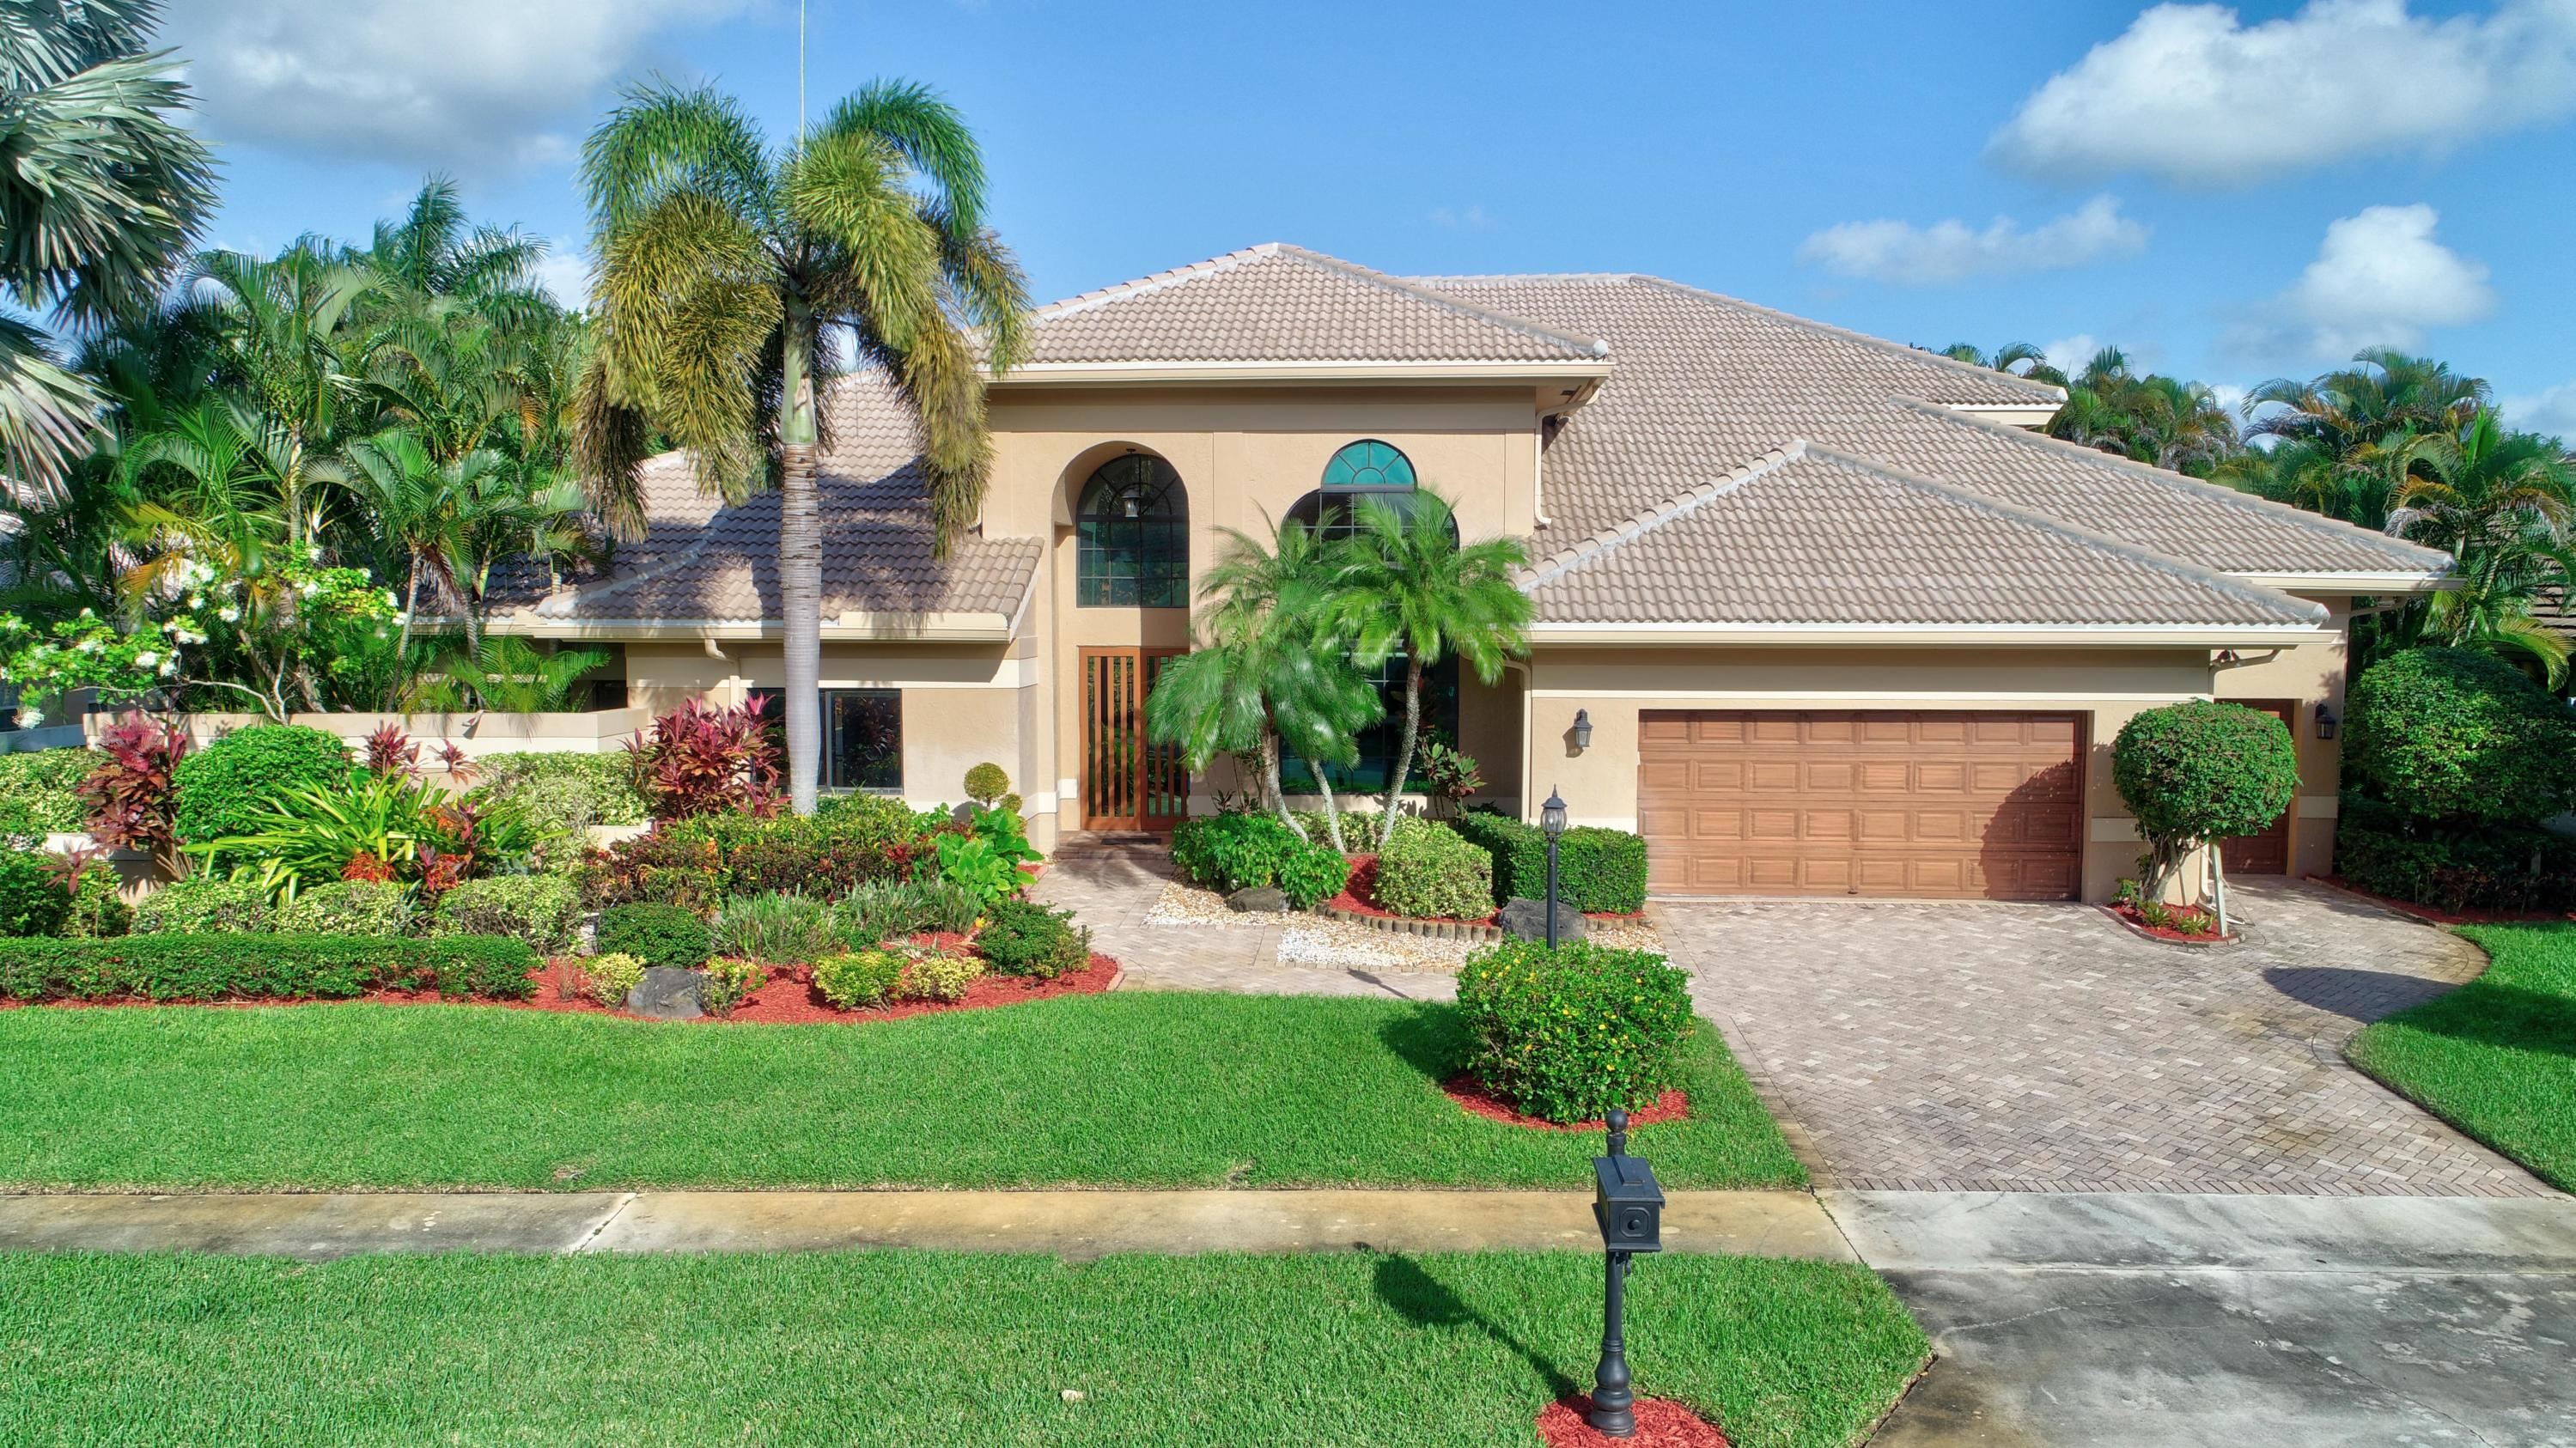 Home for sale in Stonebridge Boca Raton Florida